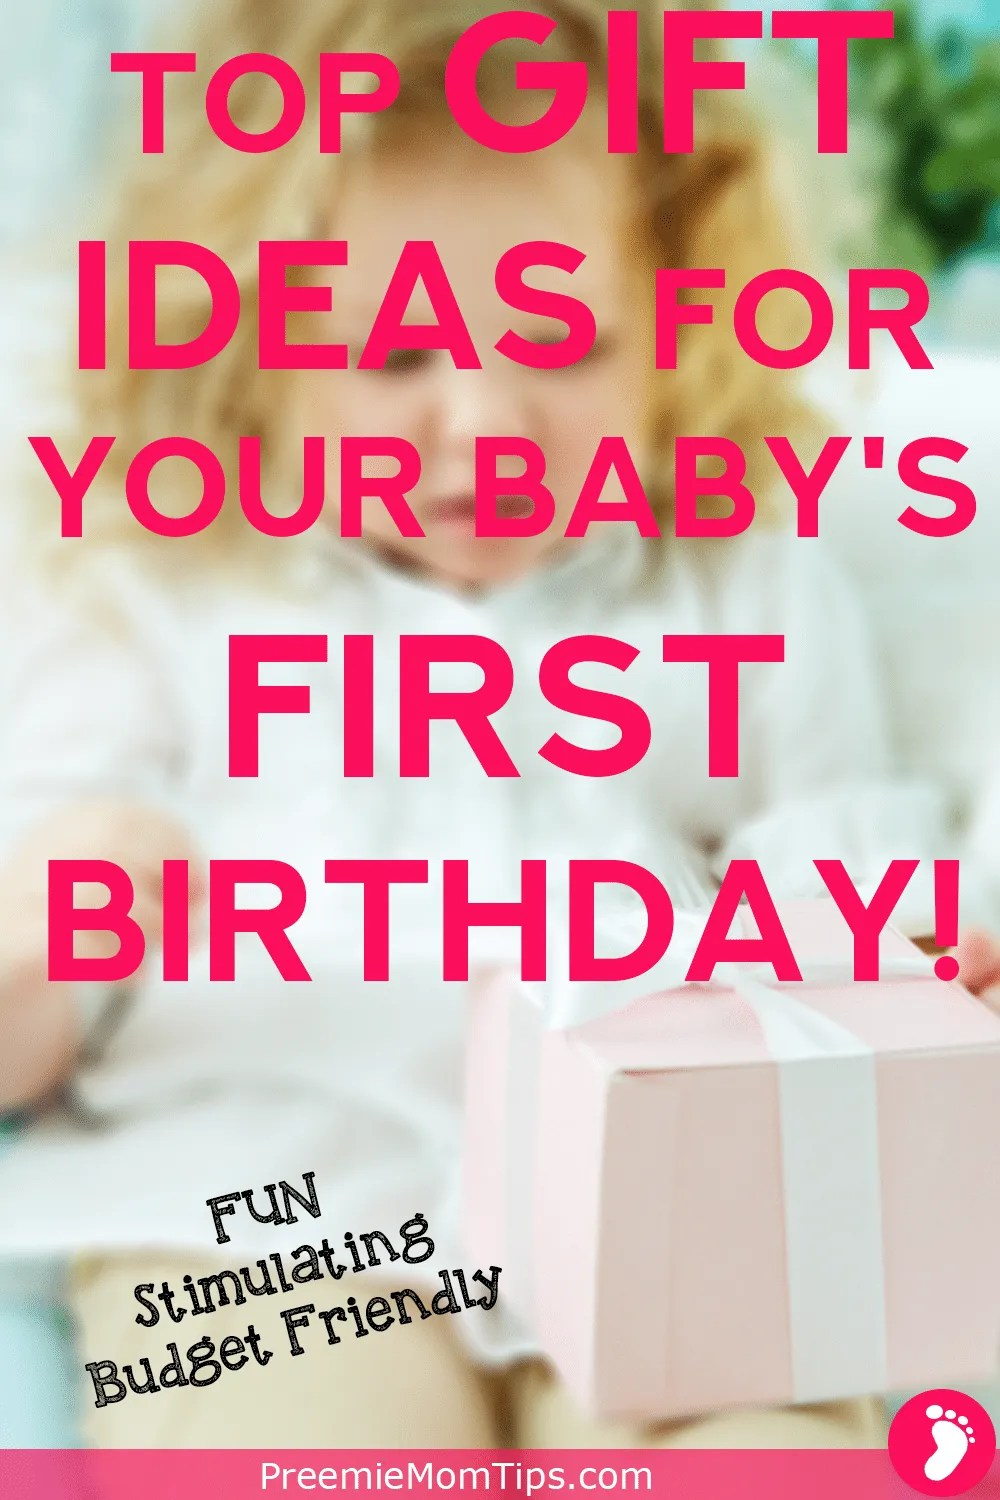 Fun, Stimulating, budget friendly gifts that every baby will enjoy for years to come! Have a perfect first birthday for your perfect baby!